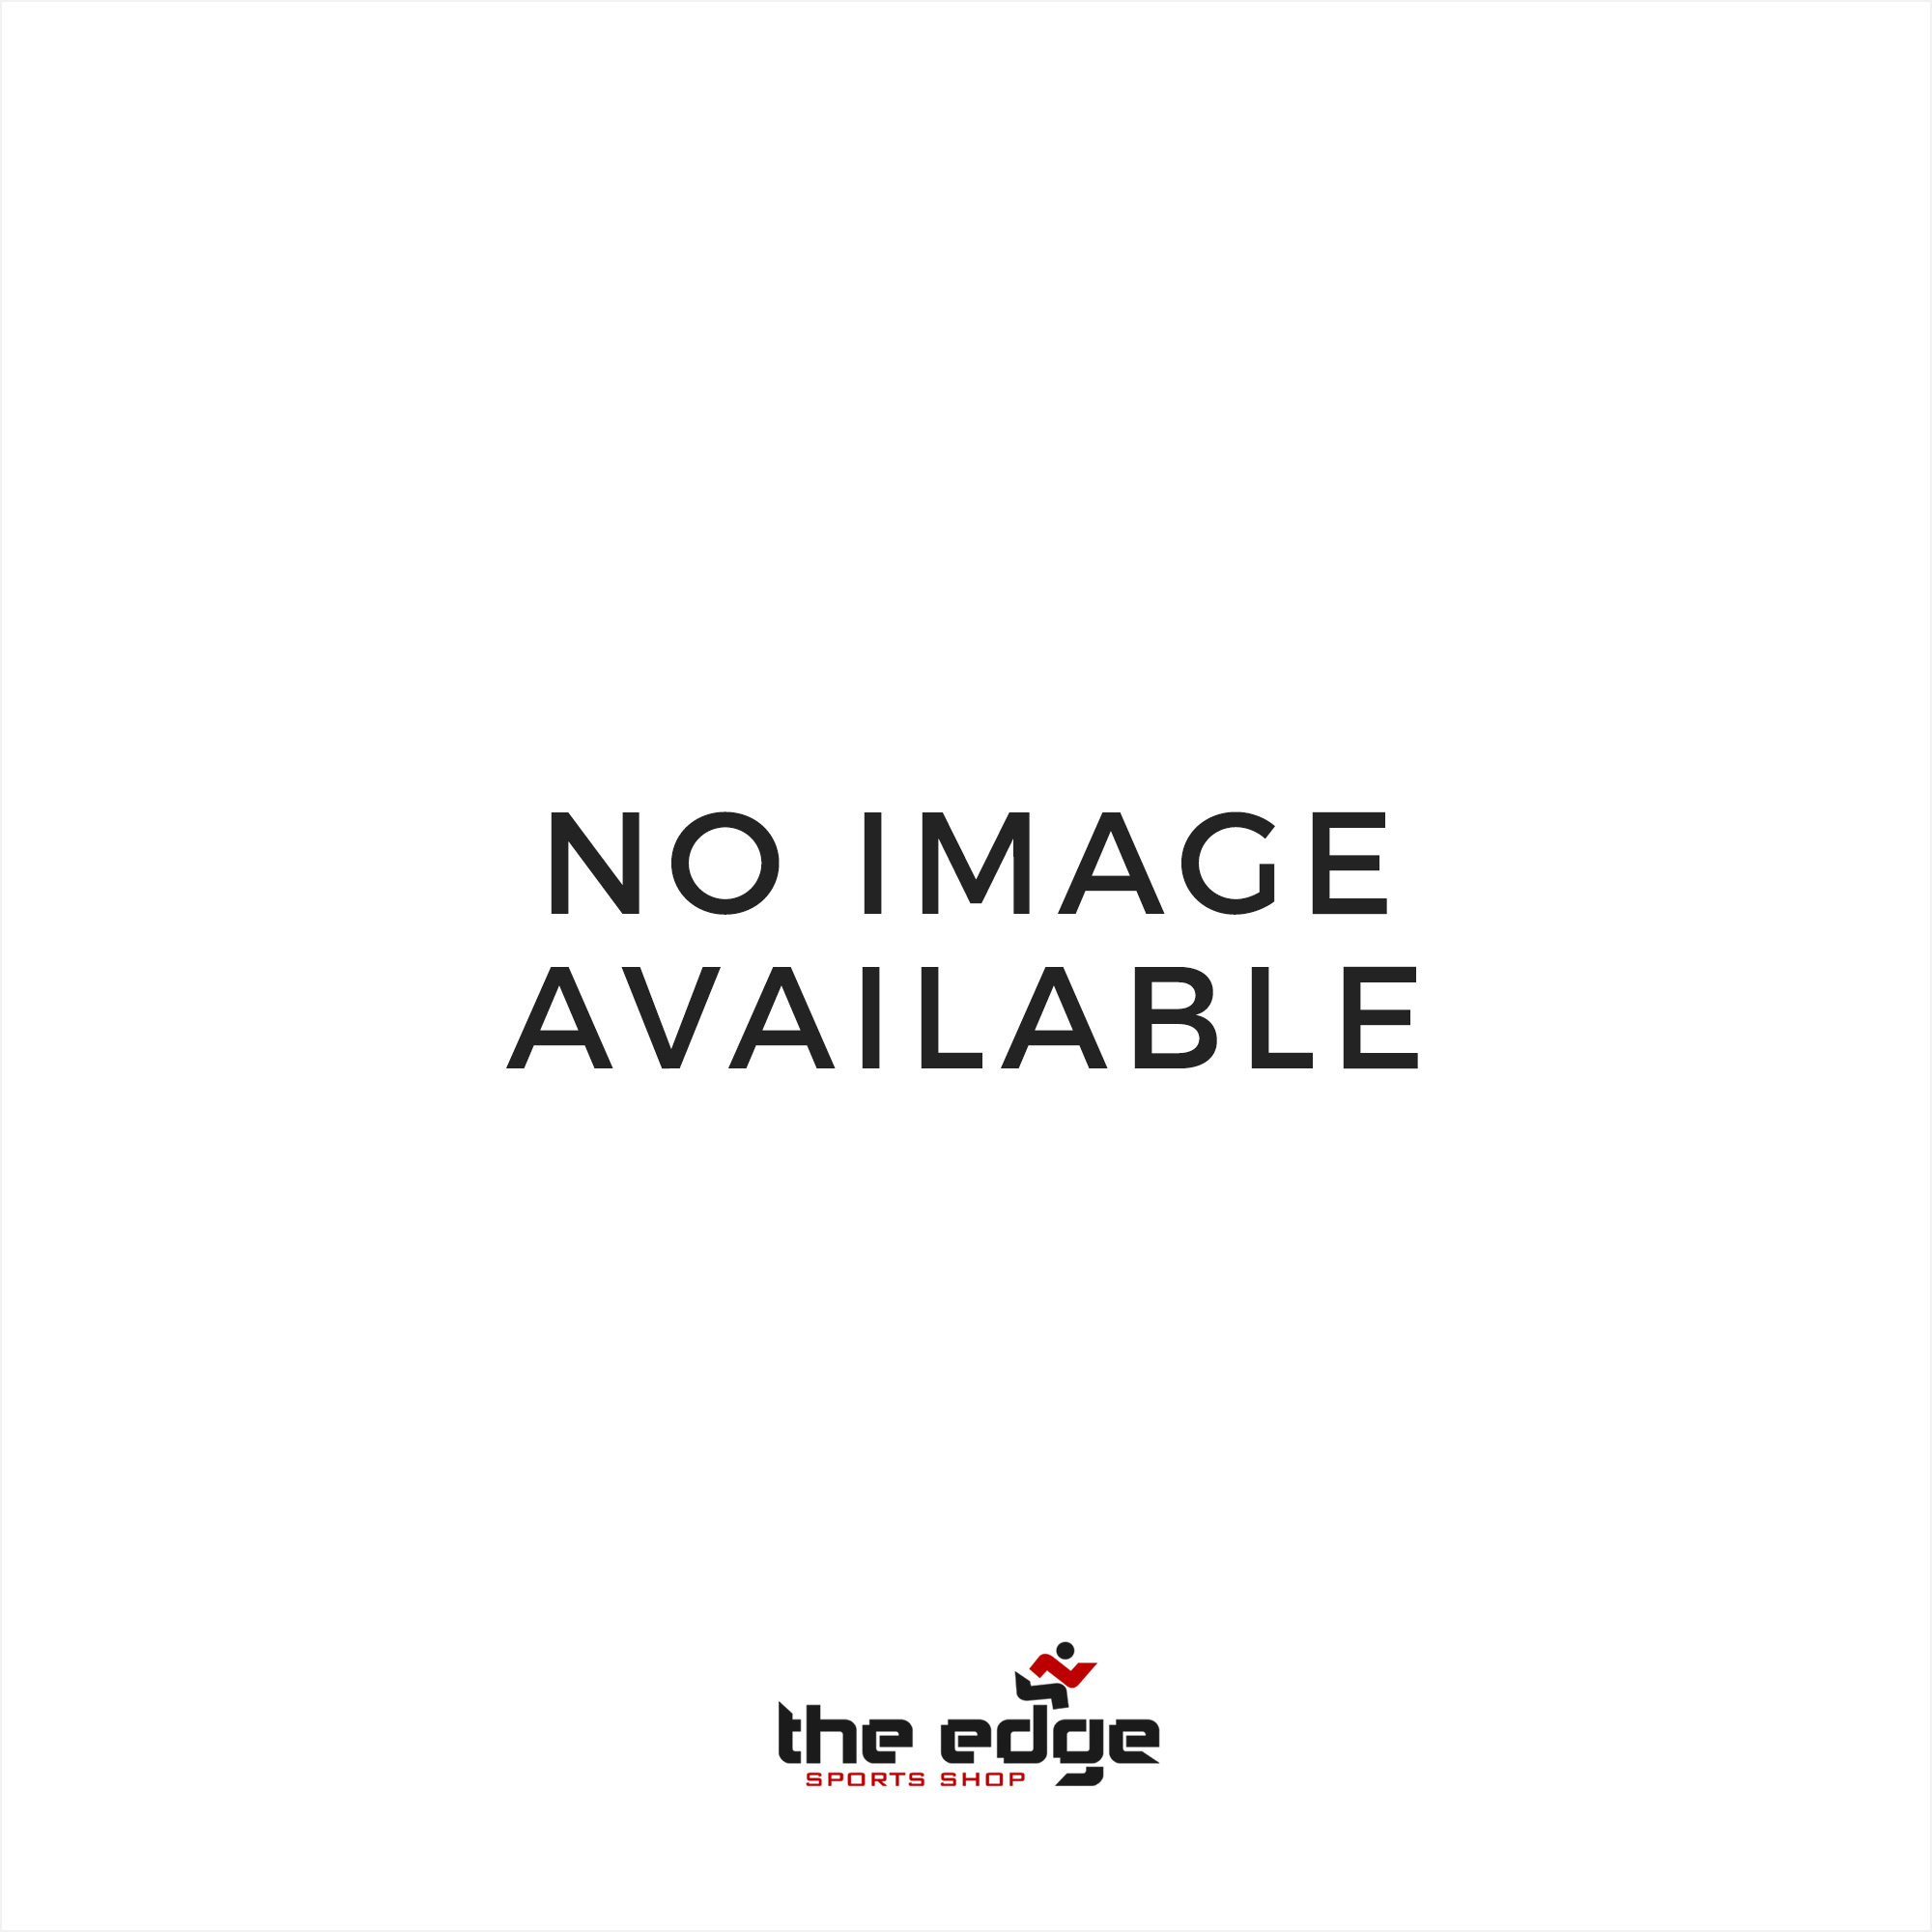 Speedo Futura Biofuse 2 Women's Goggles Assorted